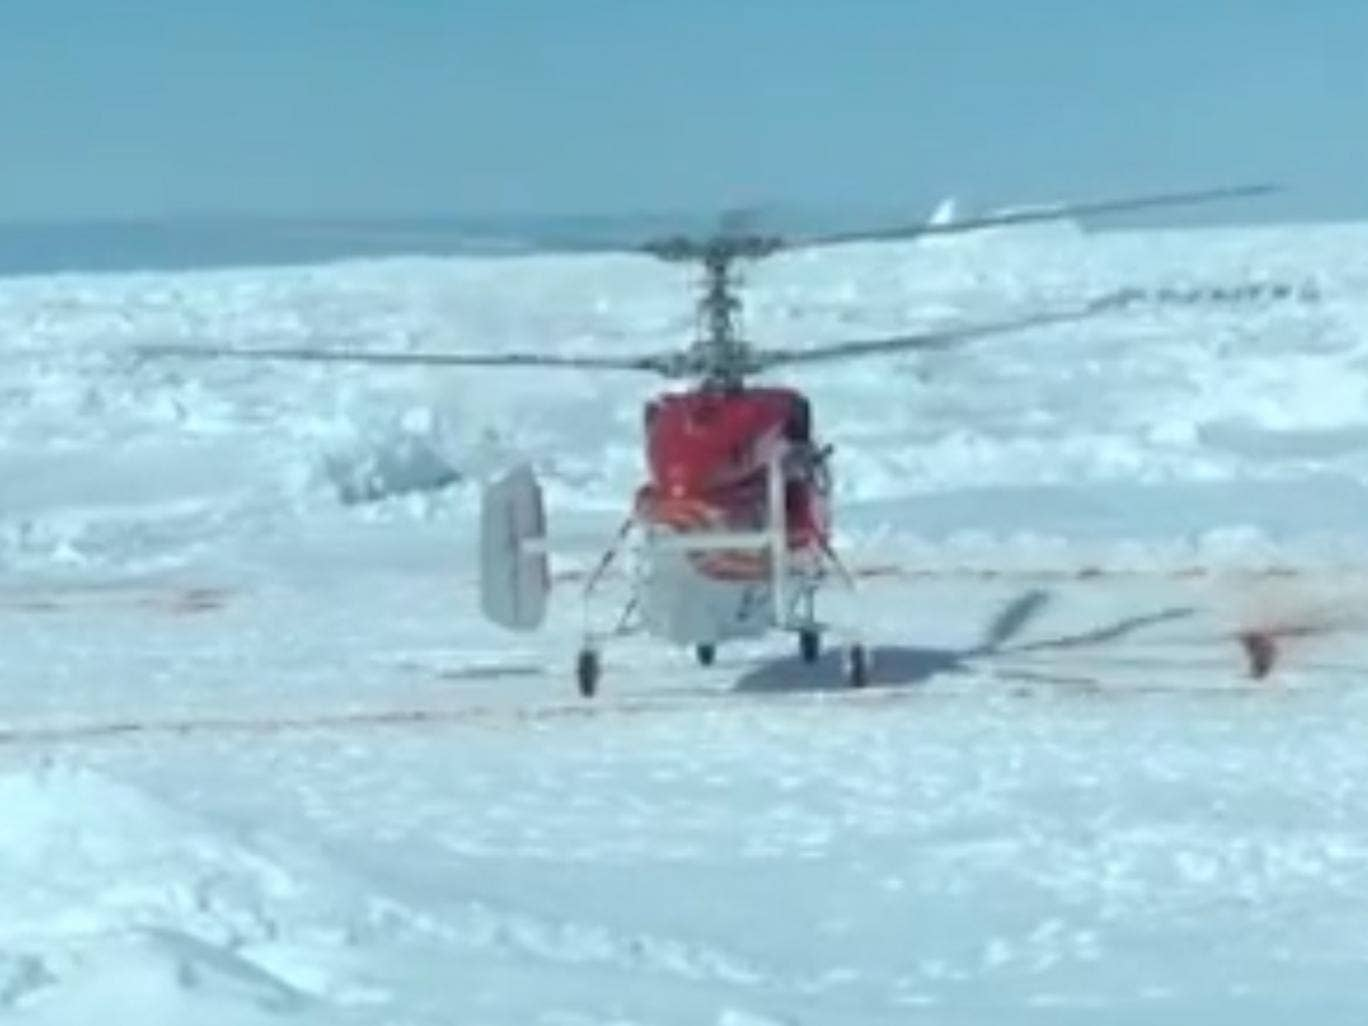 A helicopter from a nearby Chinese icebreaker lands near the Akademik Shokalskiy